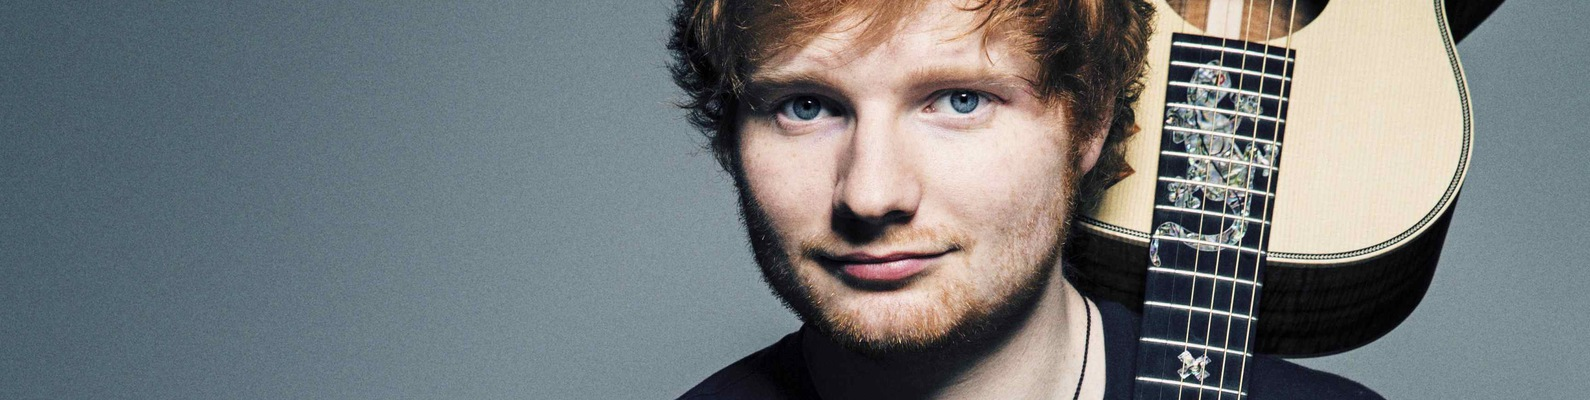 ed sheeran authenticity Ben hutcheson 411 likes 56 talking about this ed sheeran and tim mcgraw making rich voice he expresses emotion and authenticity and makes a.